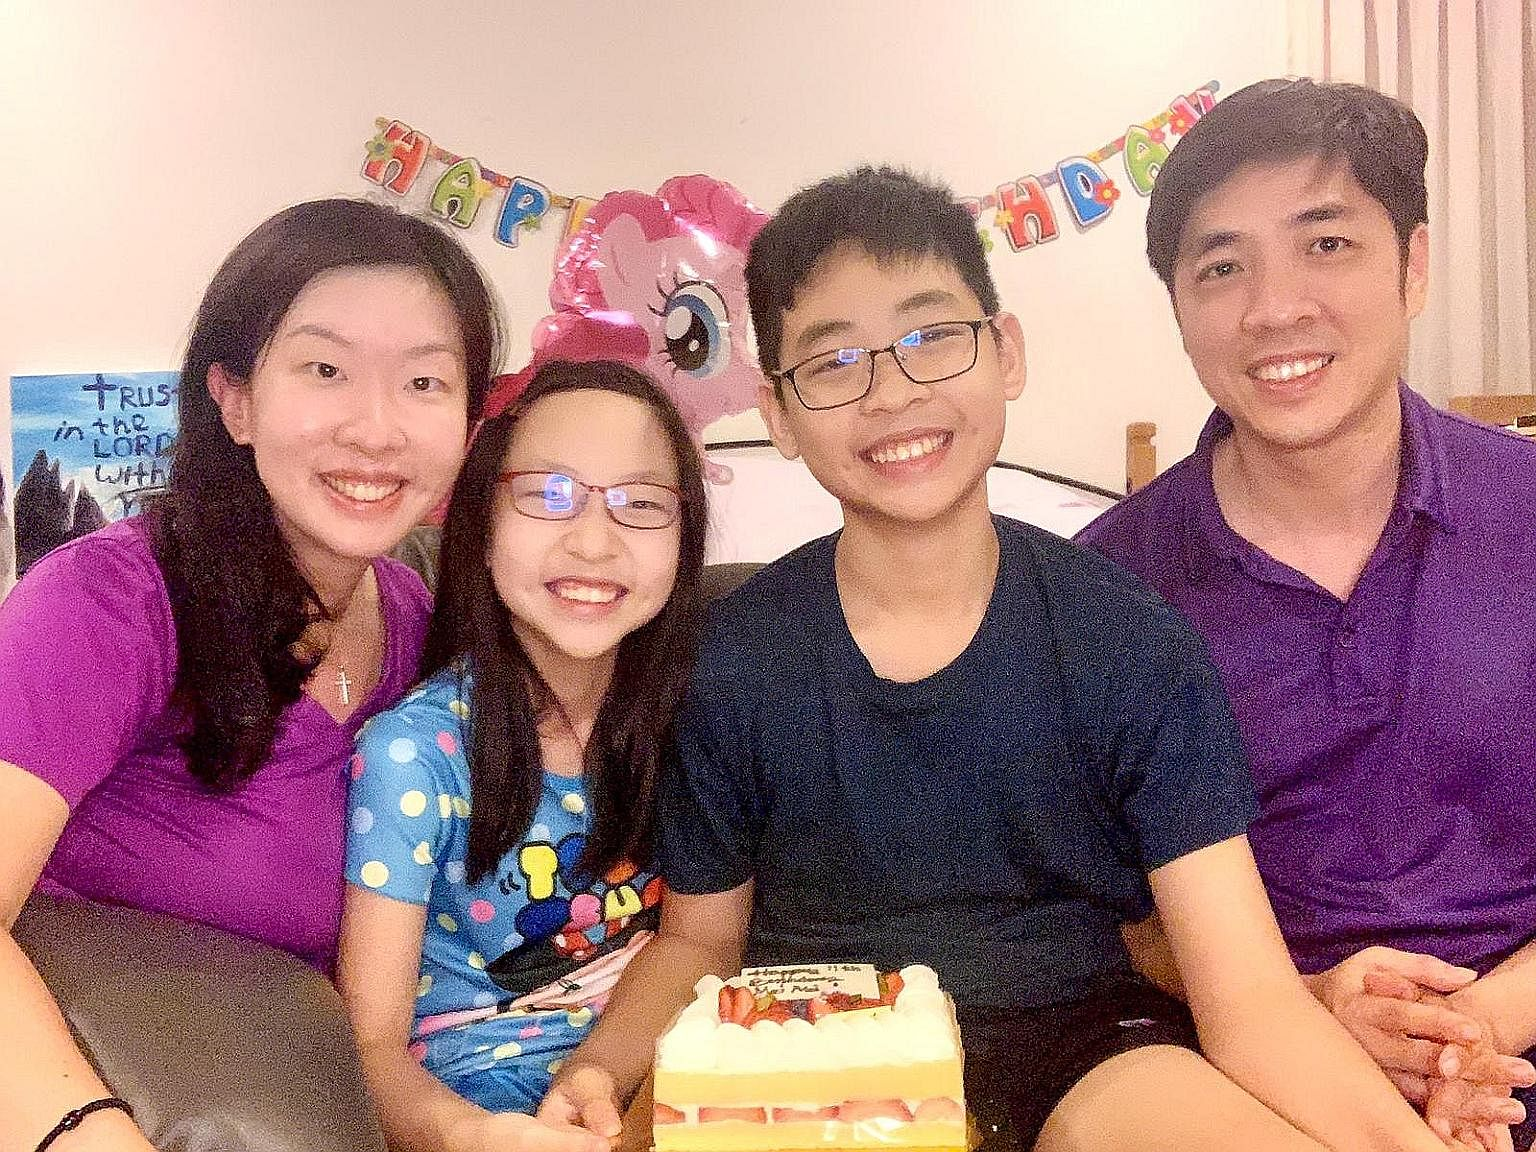 Ms Violet Lim and her husband, Mr Jamie Lee, both contracted Covid-19 following an overseas trip. After being discharged from hospital, she focused on building qualities like resilience and independence in their kids Corum and Cara.